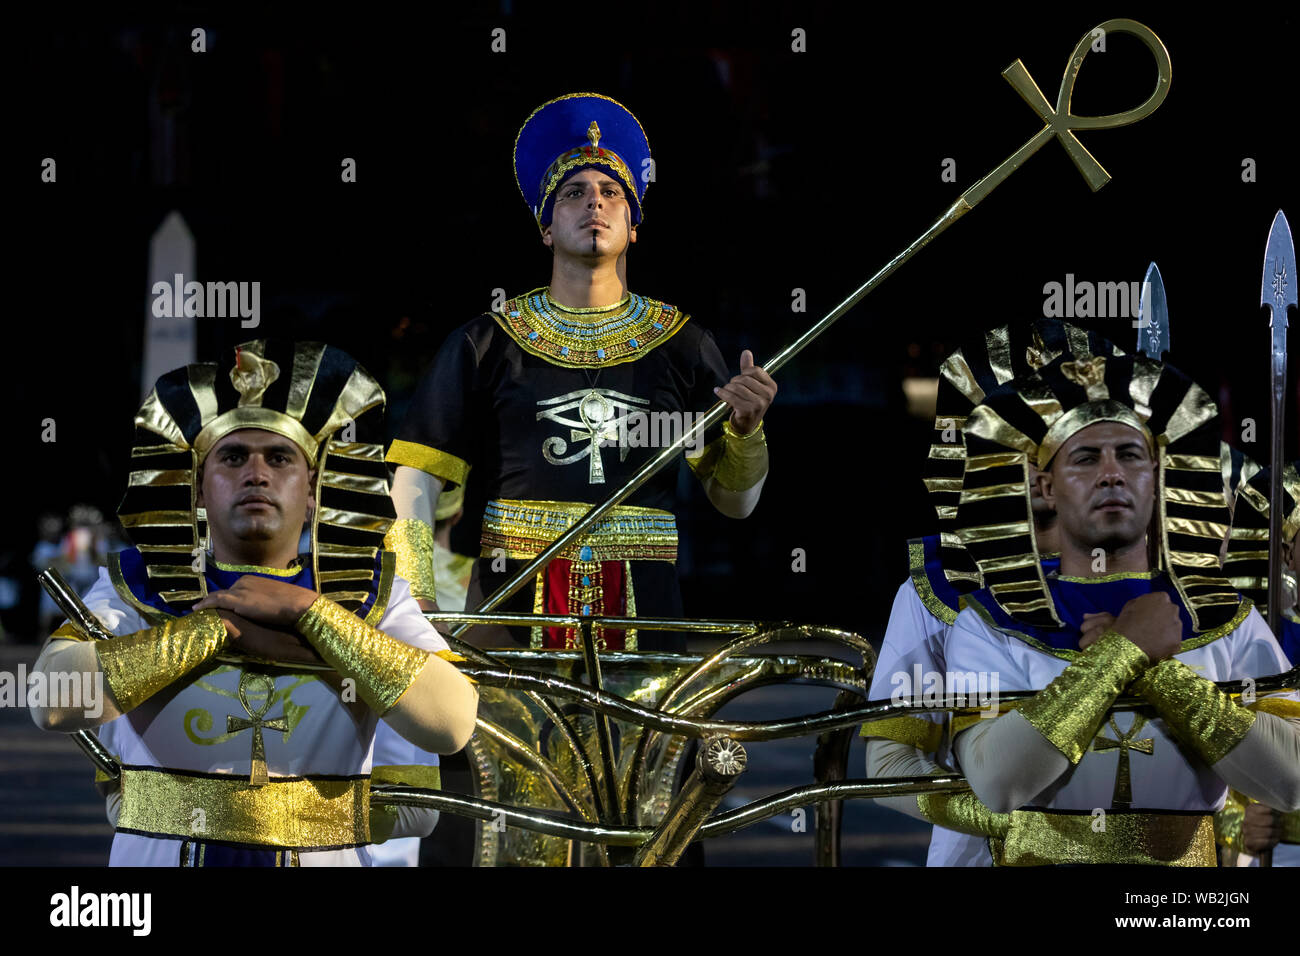 Members of the Egyptian Military Symphonic Band during during the 12th Spasskaya Tower International Military Music Festival in Moscow Stock Photo